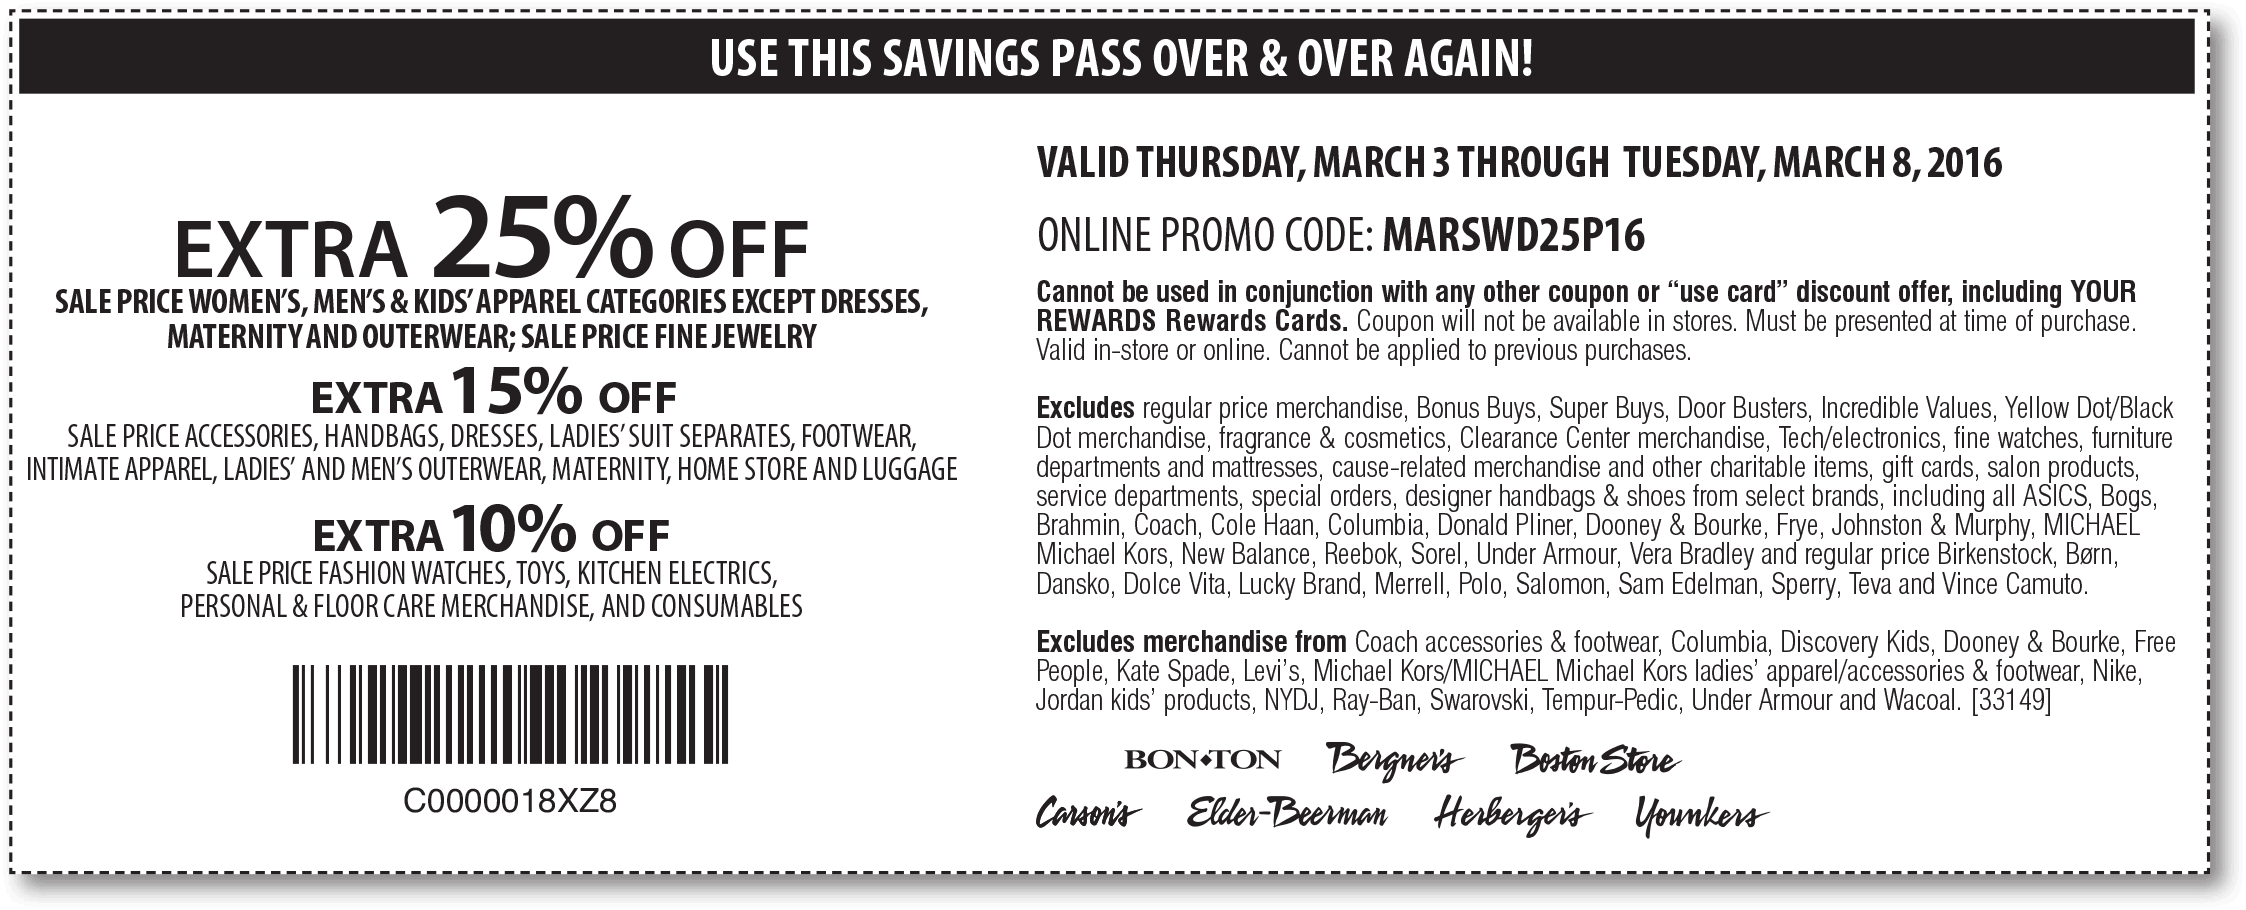 Carsons Coupon November 2018 Extra 25% off sale apparel at Bon Ton, Carsons, Boston Store, Elder-Beerman, or online via promo code MARSWD25P16